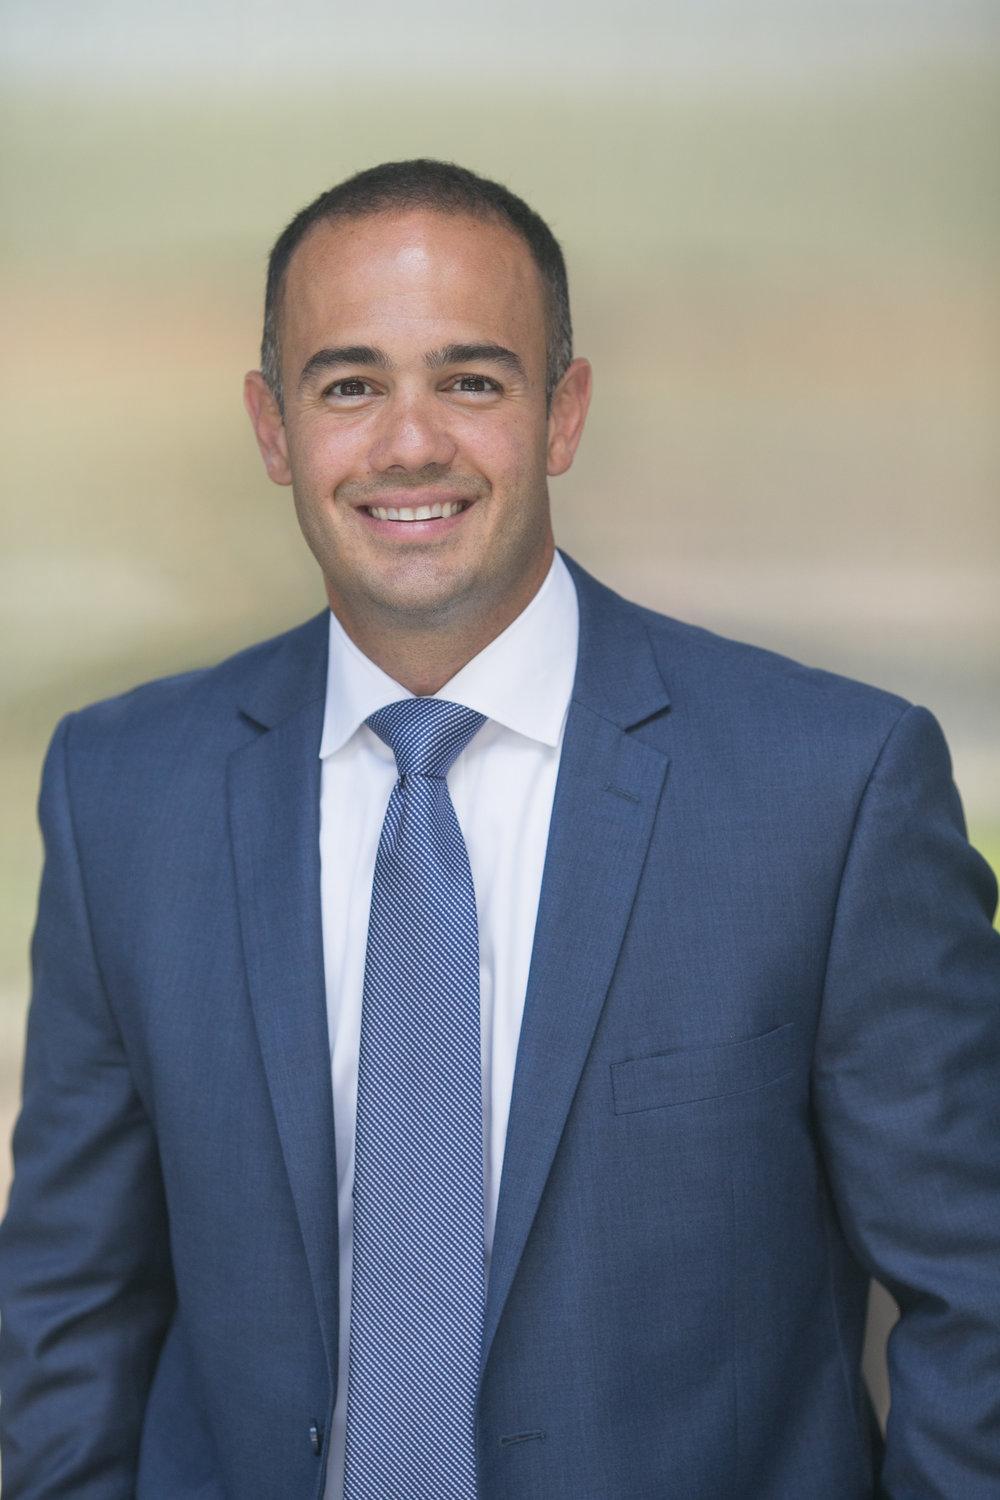 Jayson DiMaria, Esq. Immigration Attorney in Paterson and Totowa, New Jersey